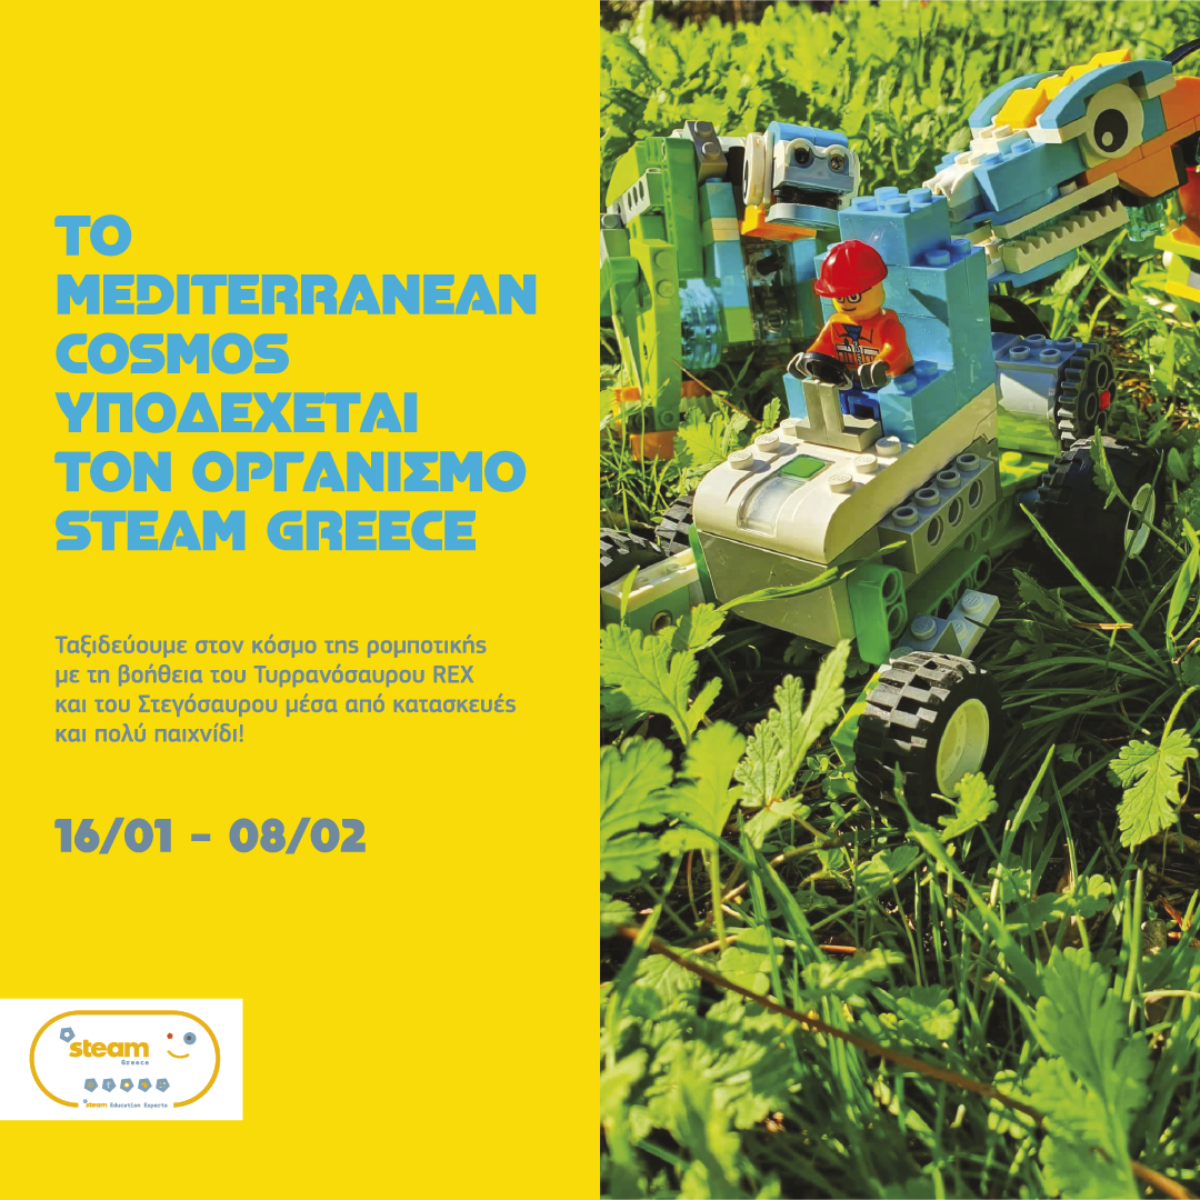 Dinosaurs & Robots by STEAM GREECE @ Mediterranean Cosmos – για λίγο ακόμα